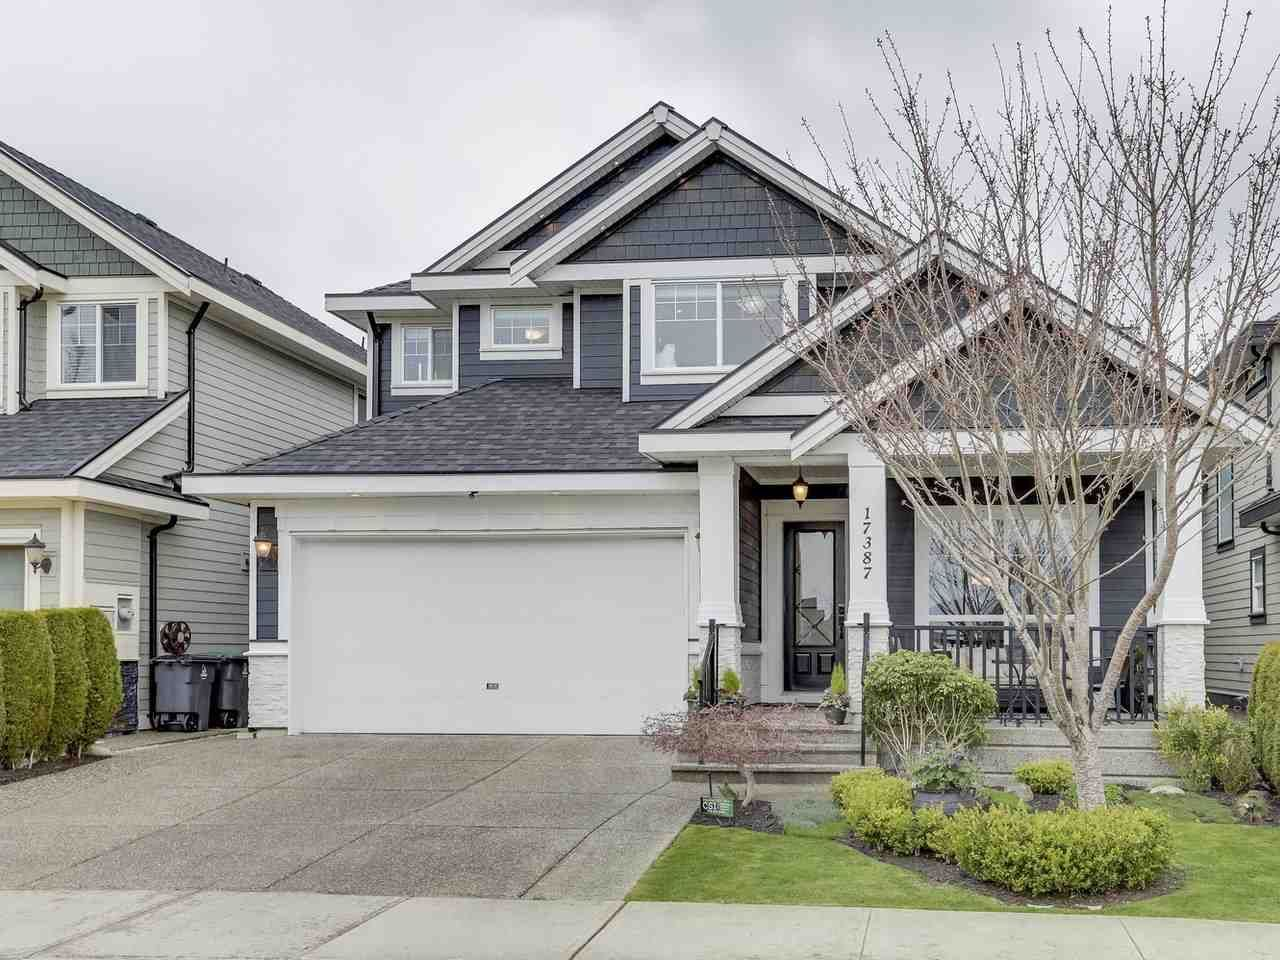 """Main Photo: 17387 3 Avenue in Surrey: Pacific Douglas House for sale in """"SUMMERFIELD"""" (South Surrey White Rock)  : MLS®# R2257323"""